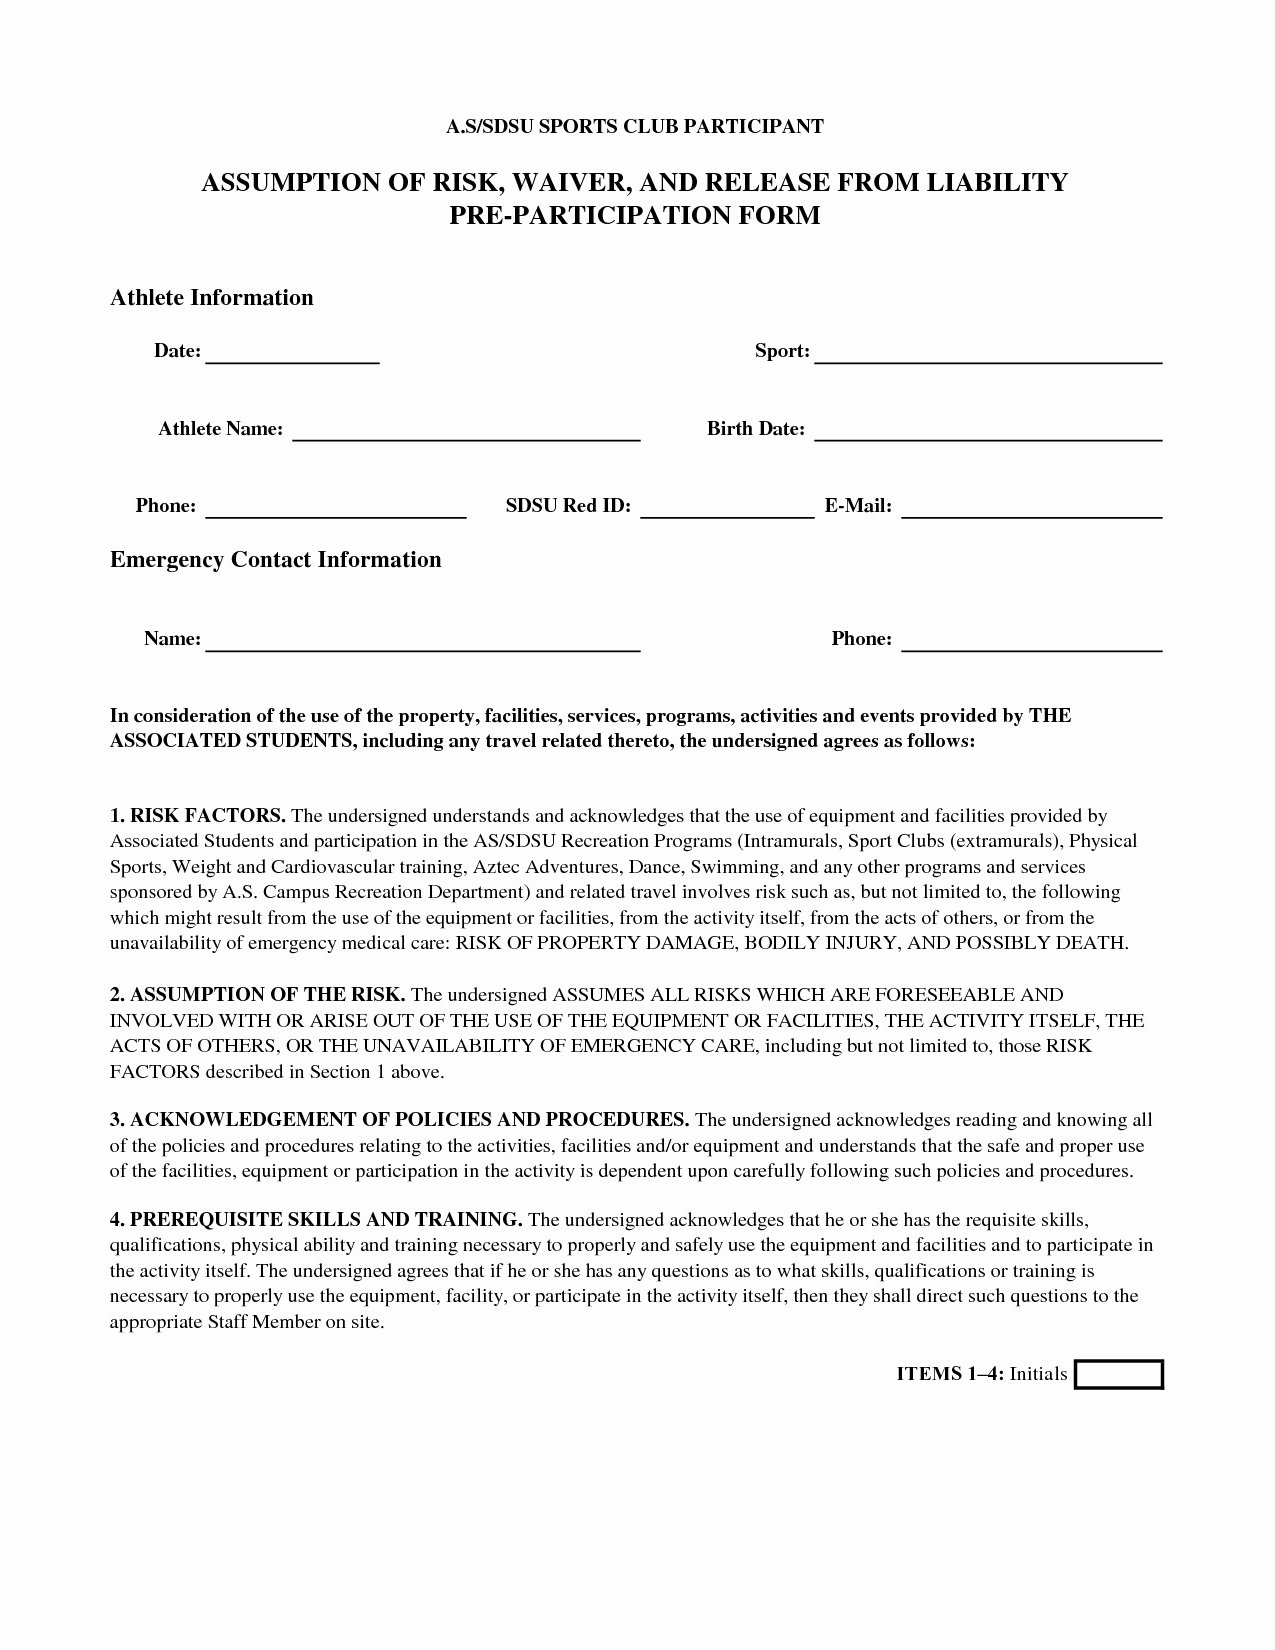 Release Of Liability Template Free Fresh Generic Liability Waiver and Release form